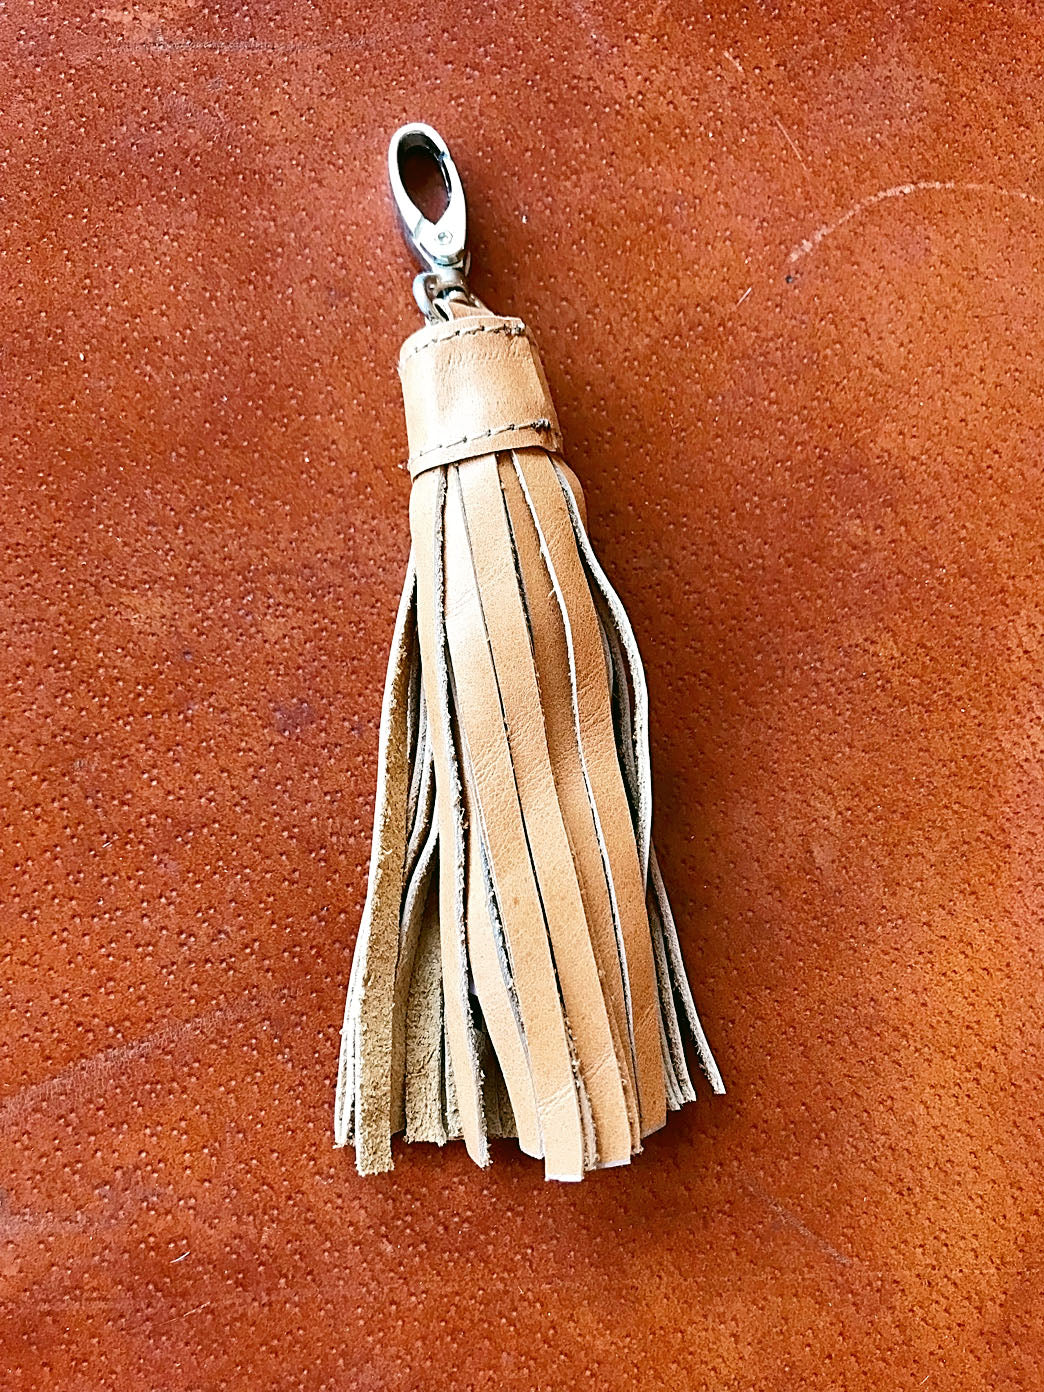 Tassel Charger - Samsung 8